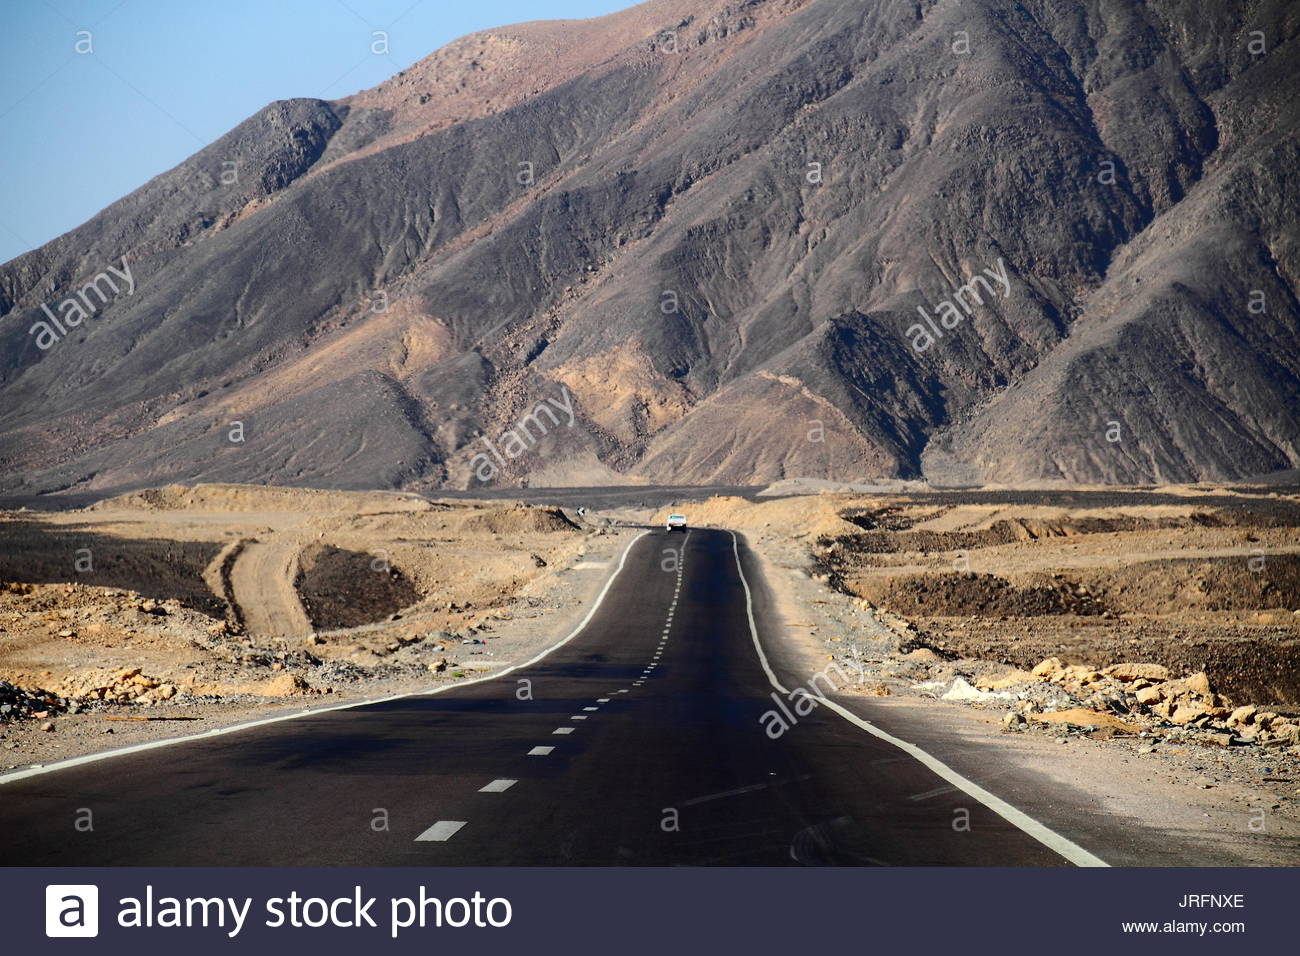 Egypt - road on the desert - Stock Image